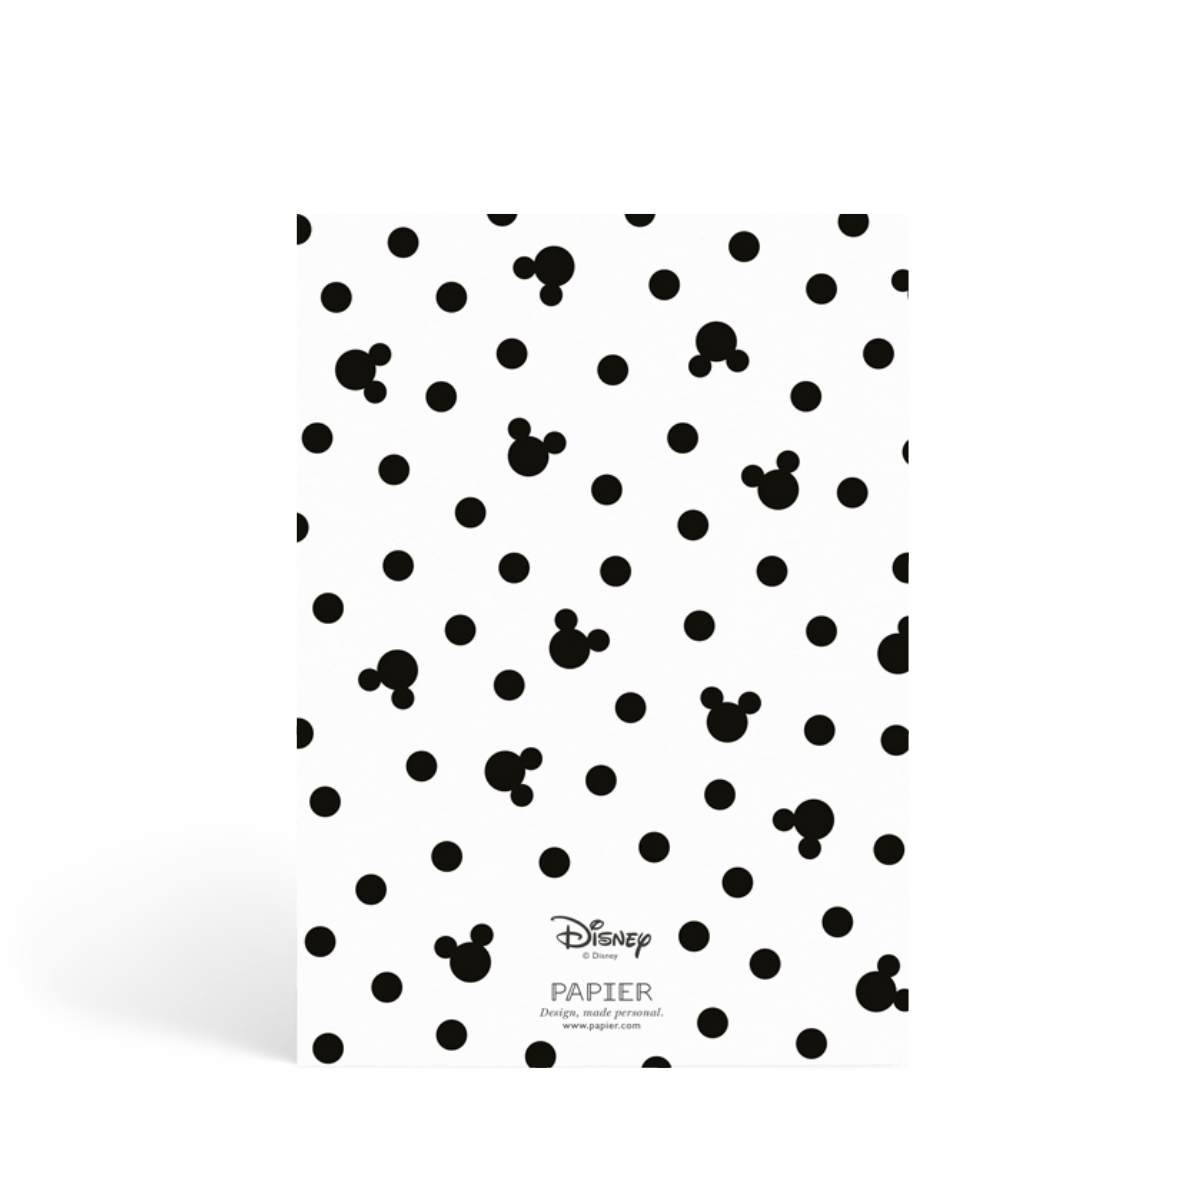 Https%3a%2f%2fwww.papier.com%2fproduct image%2f51341%2f5%2fpolka dot mickey mouse 12573 rueckseite 1540477874.png?ixlib=rb 1.1